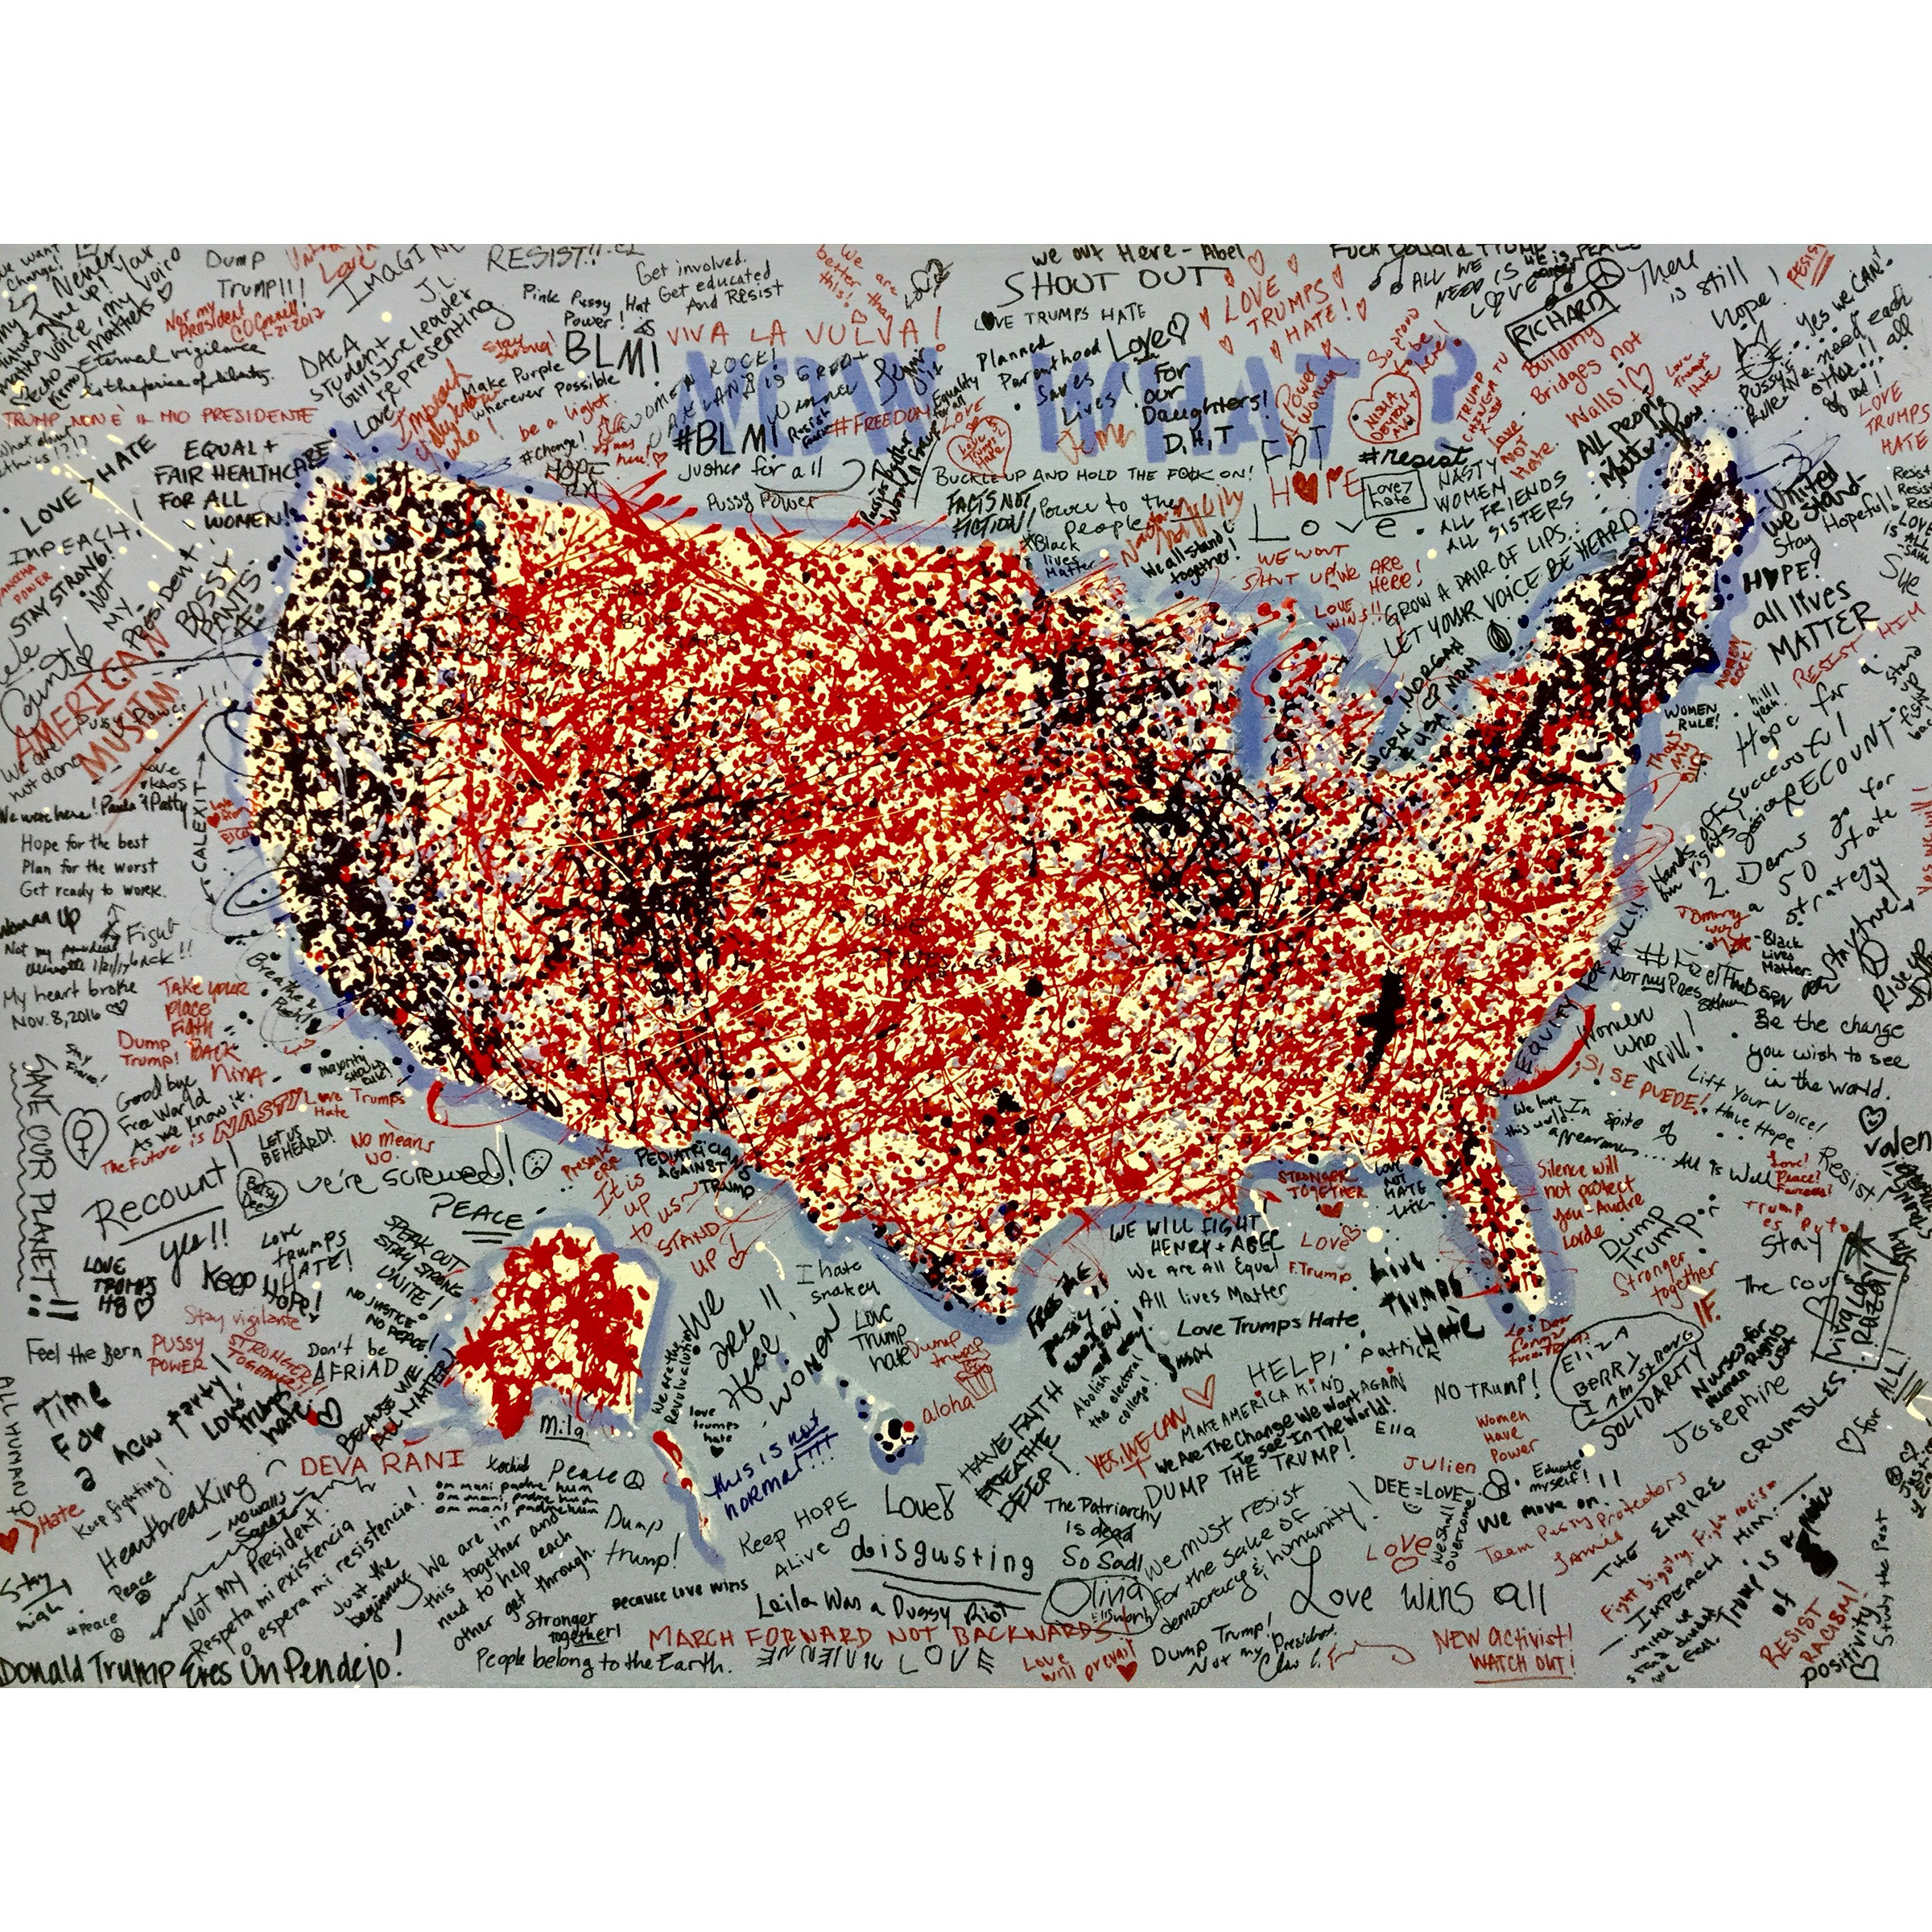 WwwunnaturalelectioncomArtwork - Electoral map can you hear us now